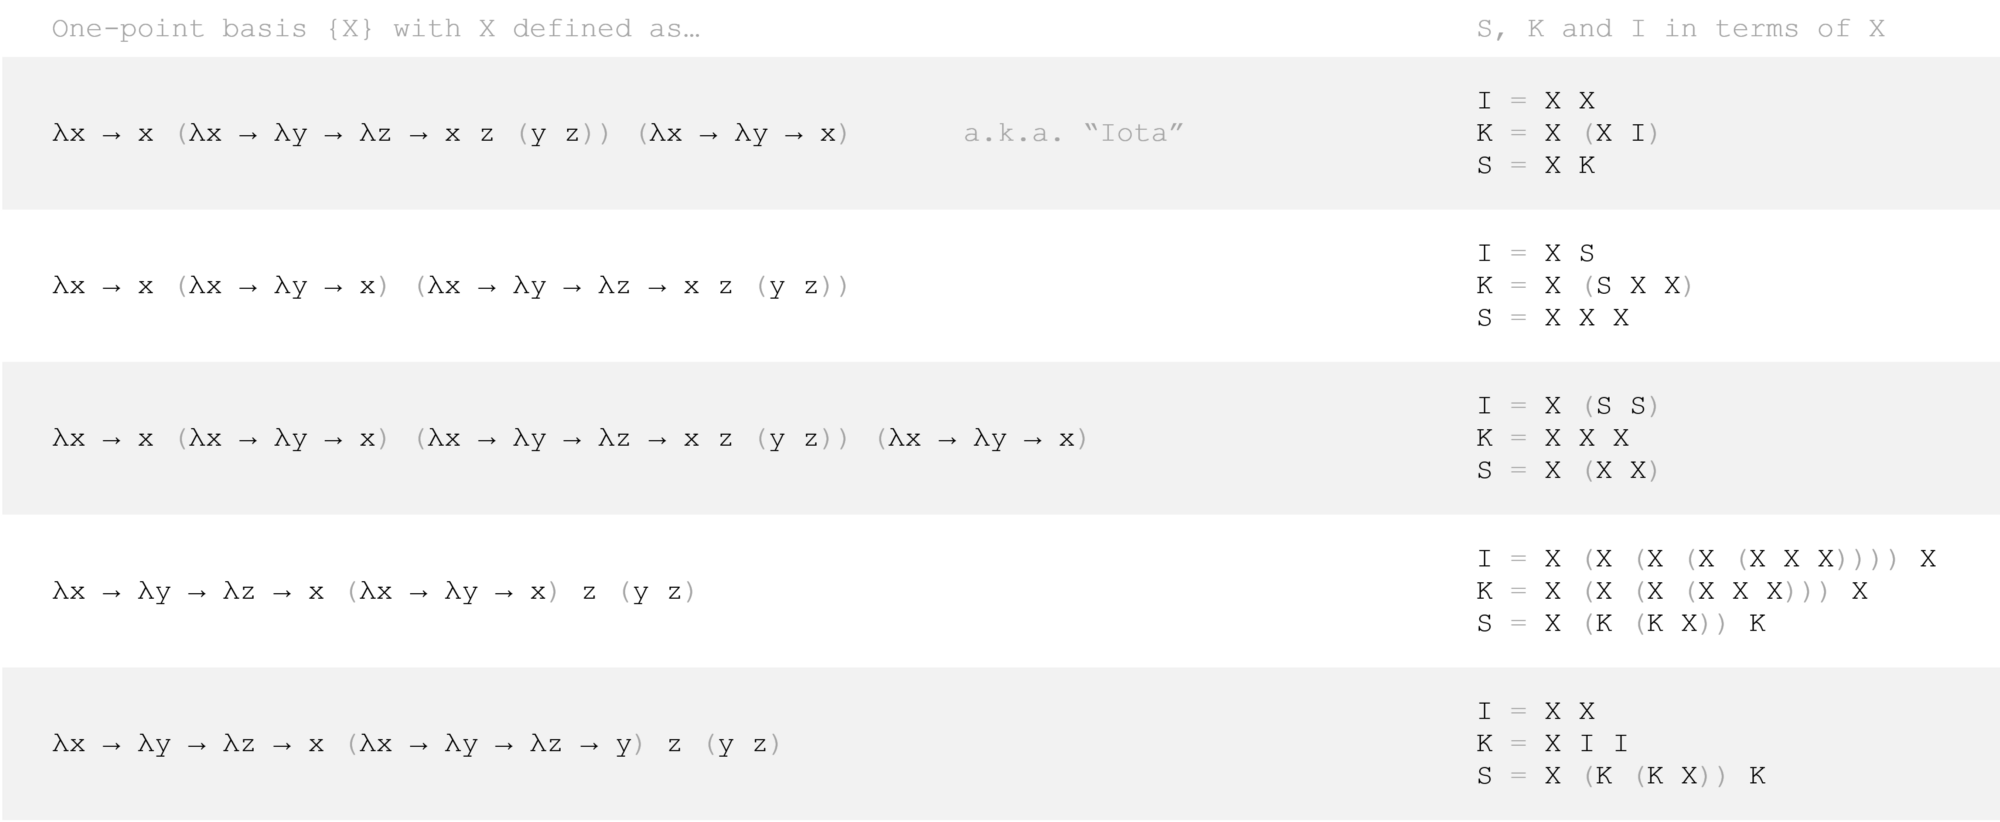 A table of one-point basis examples, together with SKI in terms of them.